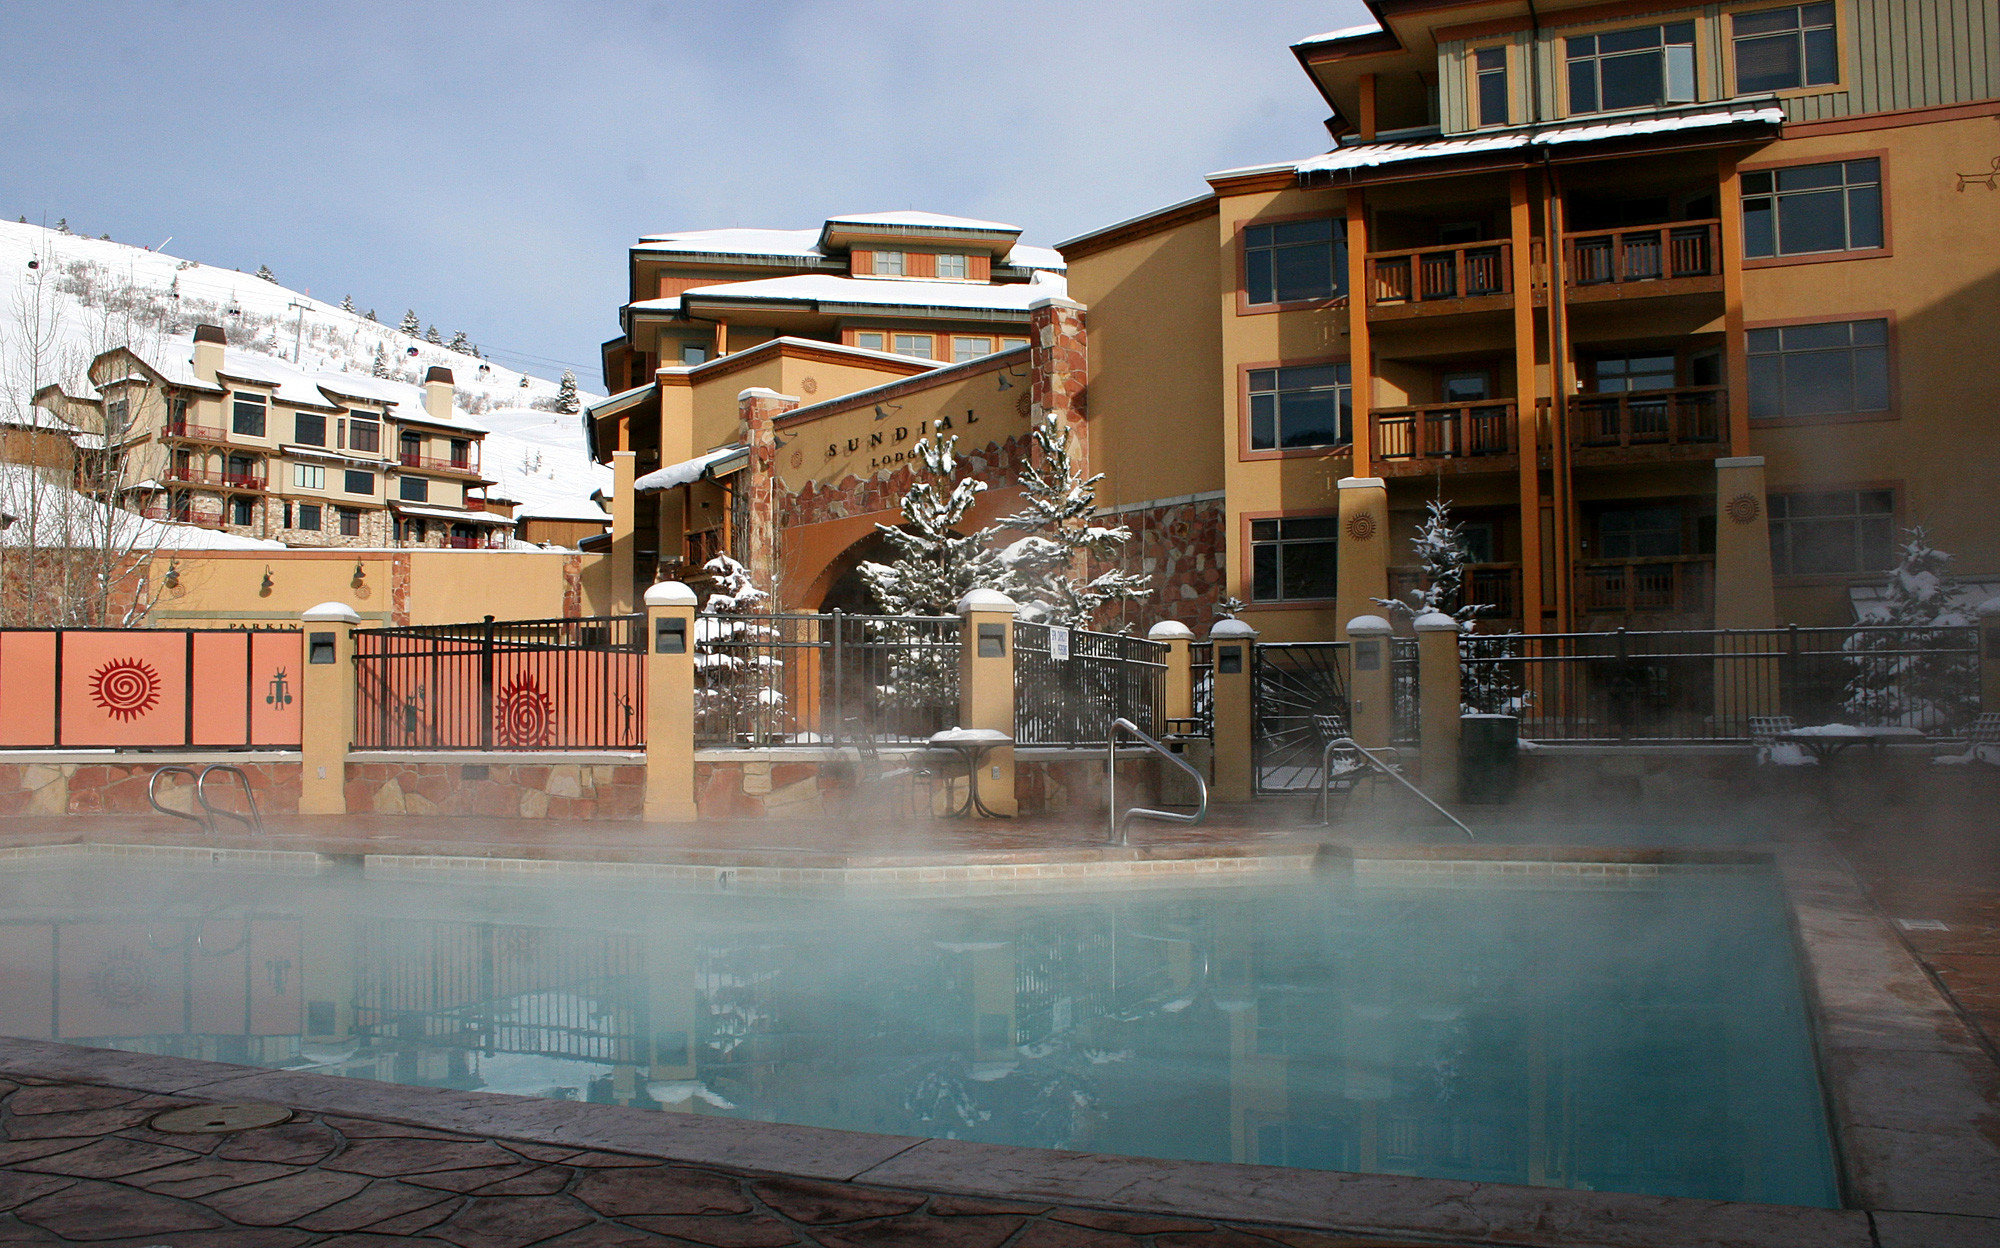 Family Hot tub/Jacuzzi Mountains Outdoor Activities Outdoors Pool Resort Ski Sport building neighbourhood house Architecture Downtown apartment building